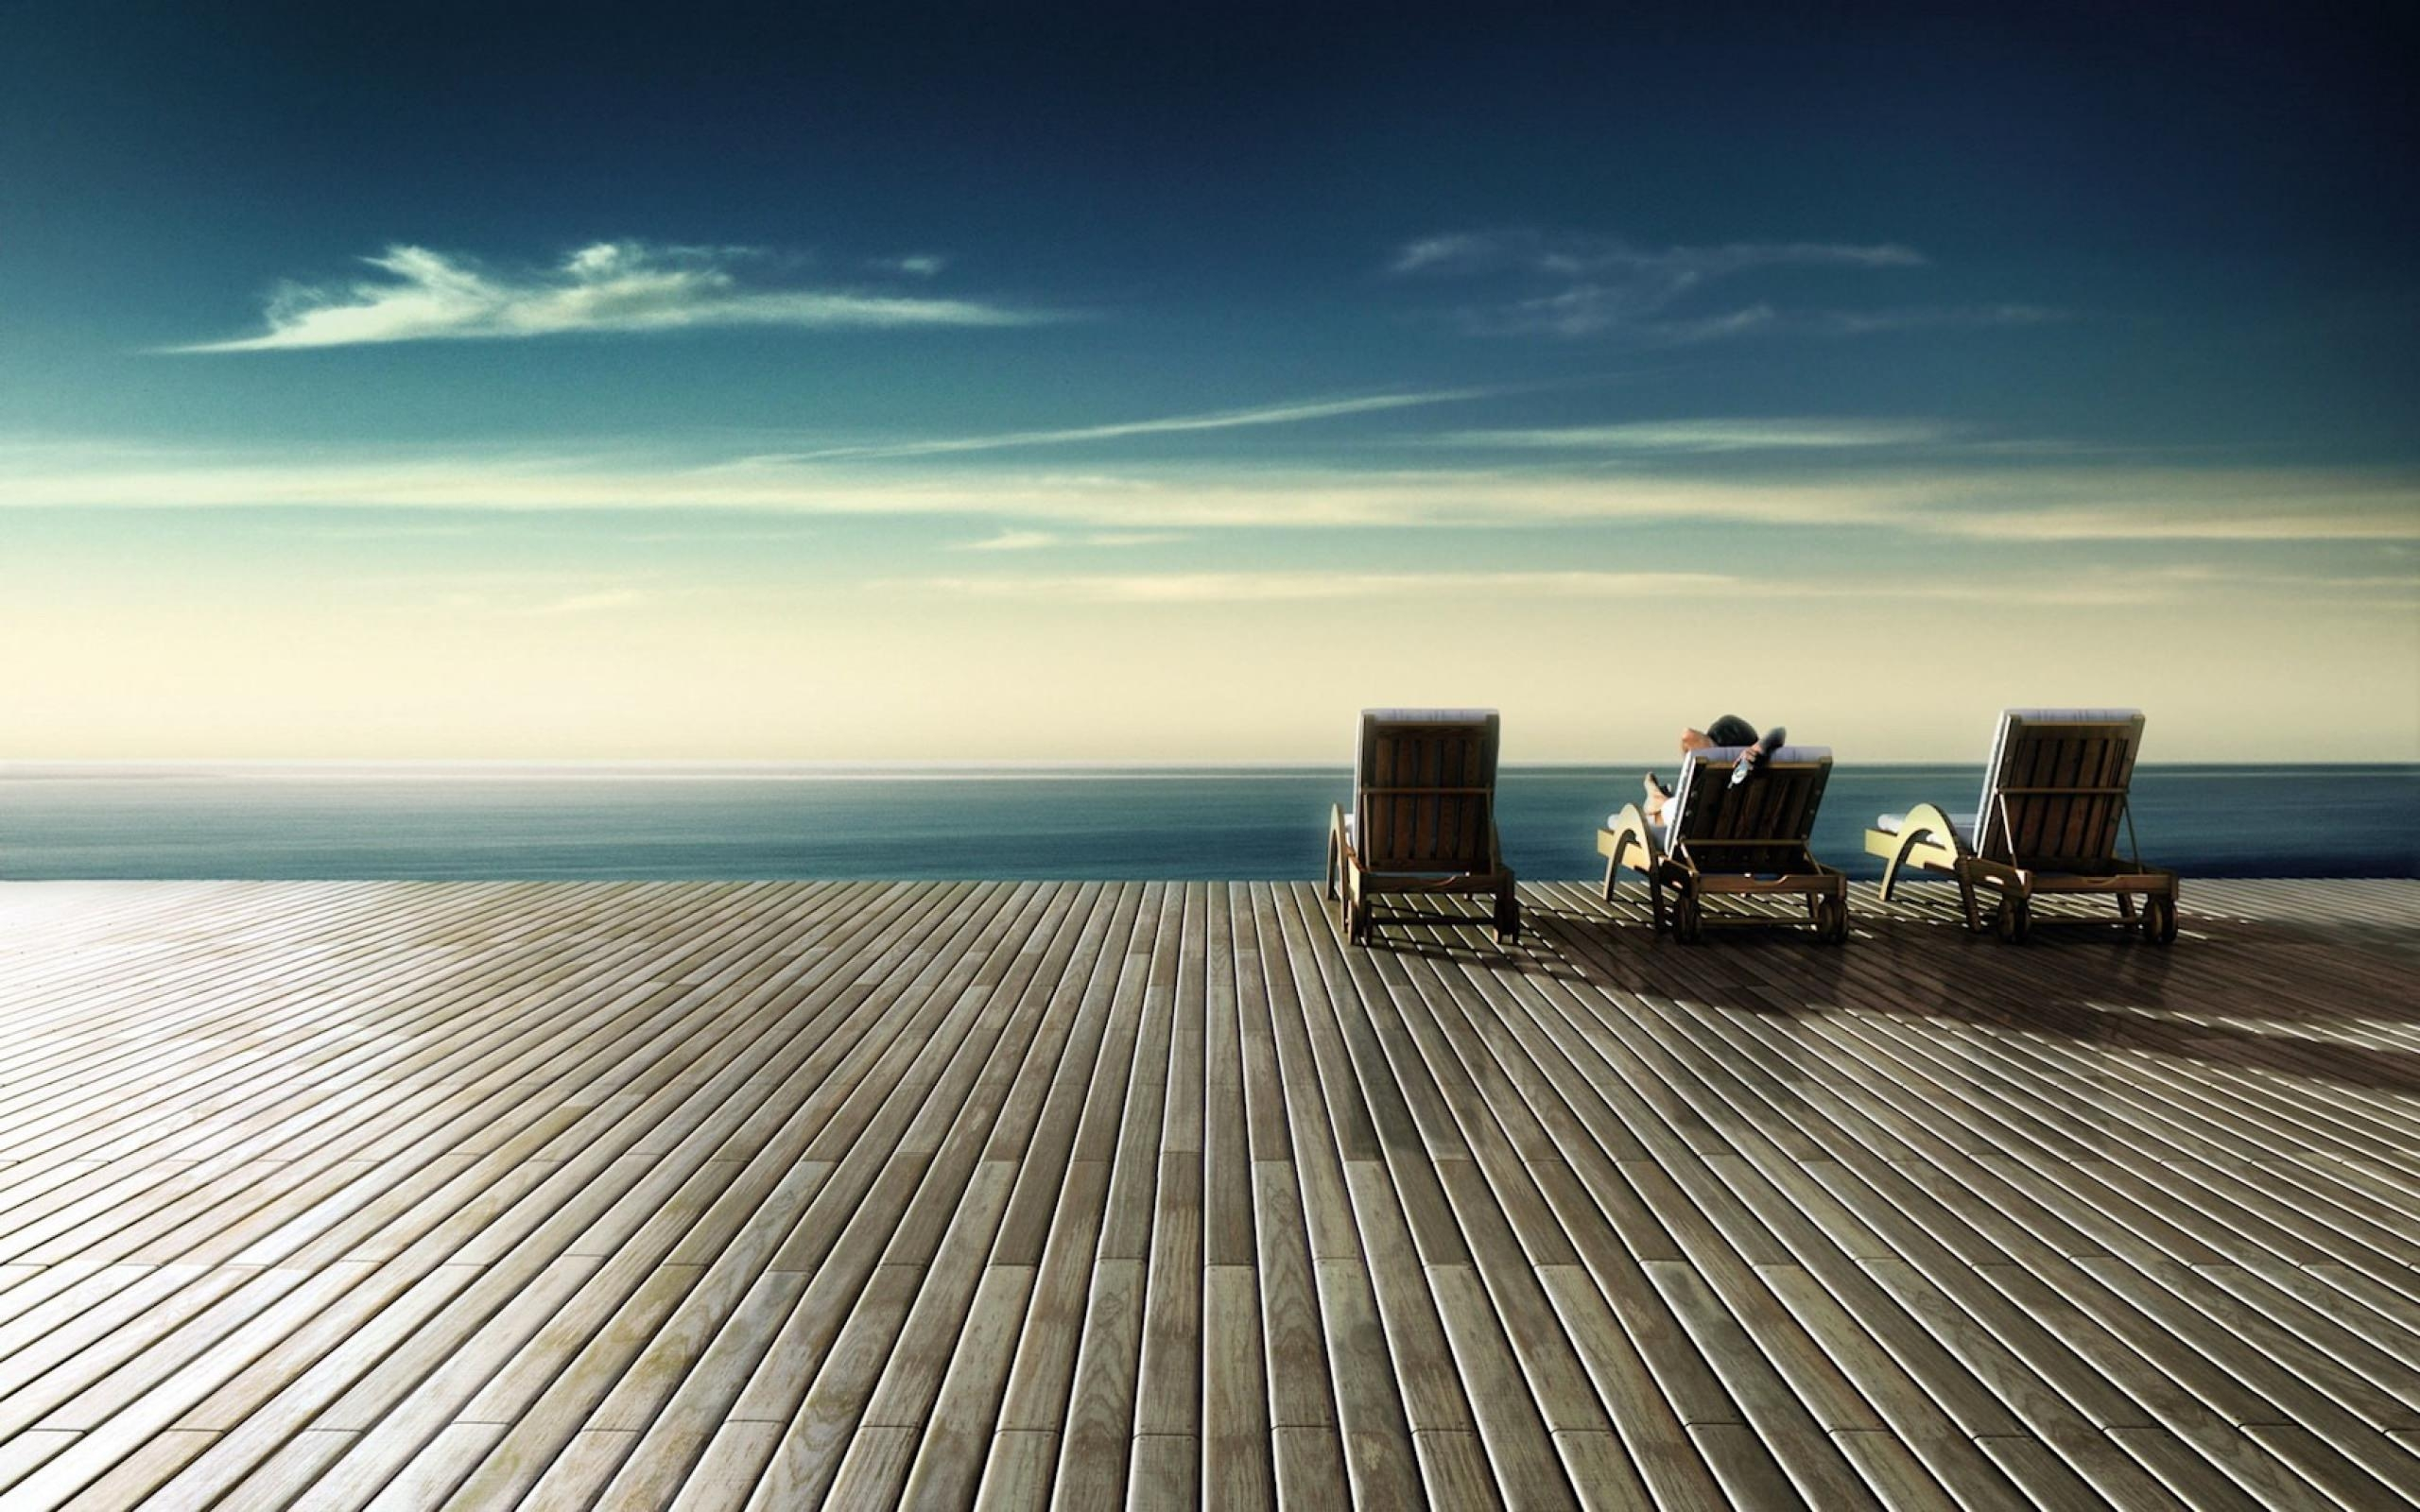 Sky Shore HD Wood Floor Wallpaper